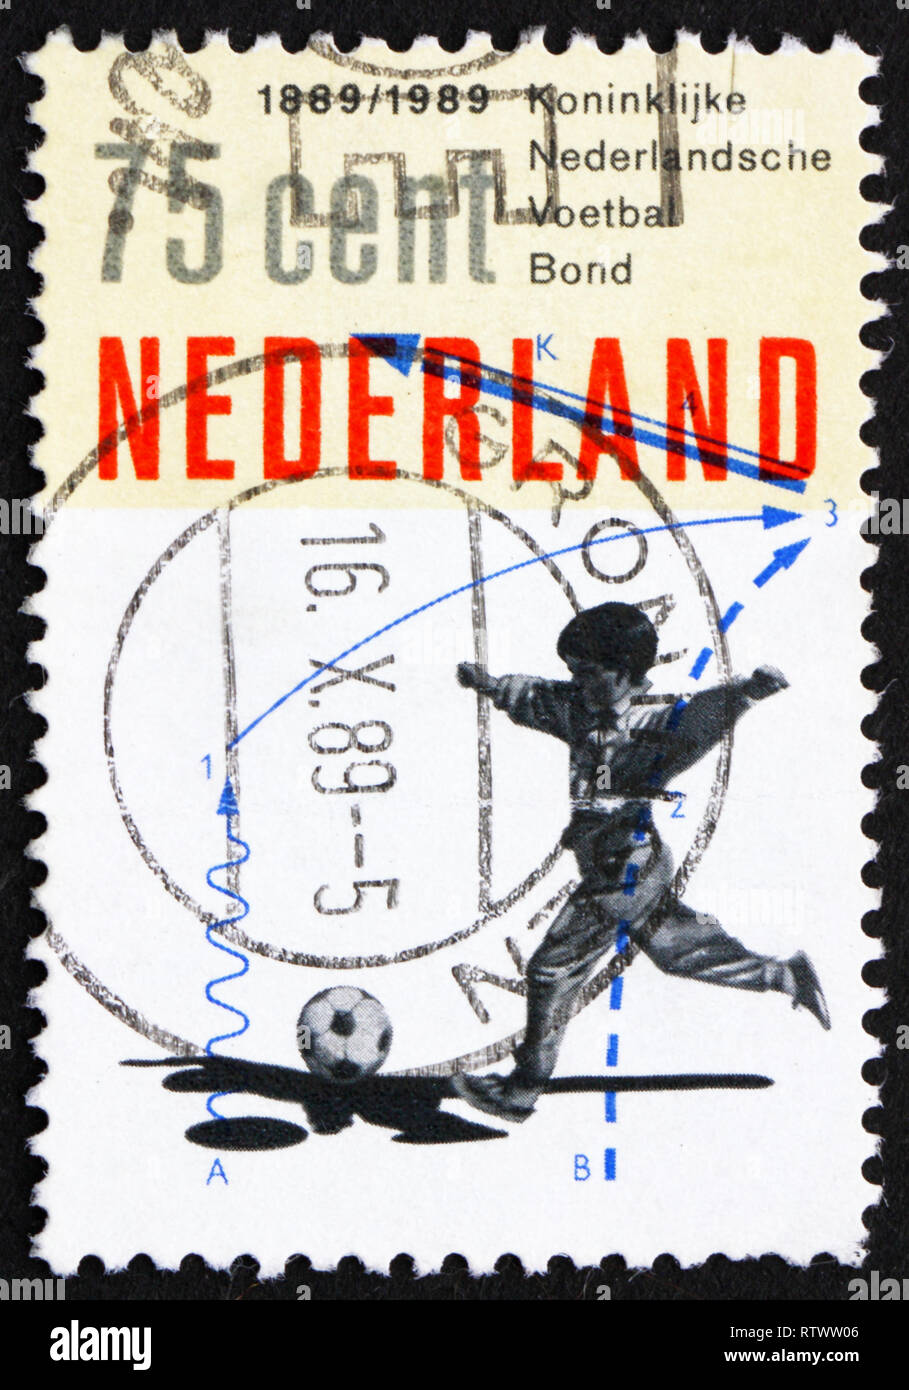 NETHERLANDS - CIRCA 1989: a stamp printed in the Netherlands shows Boy playing football, Centenary of Royal Dutch Soccer Association, circa 1989 Stock Photo